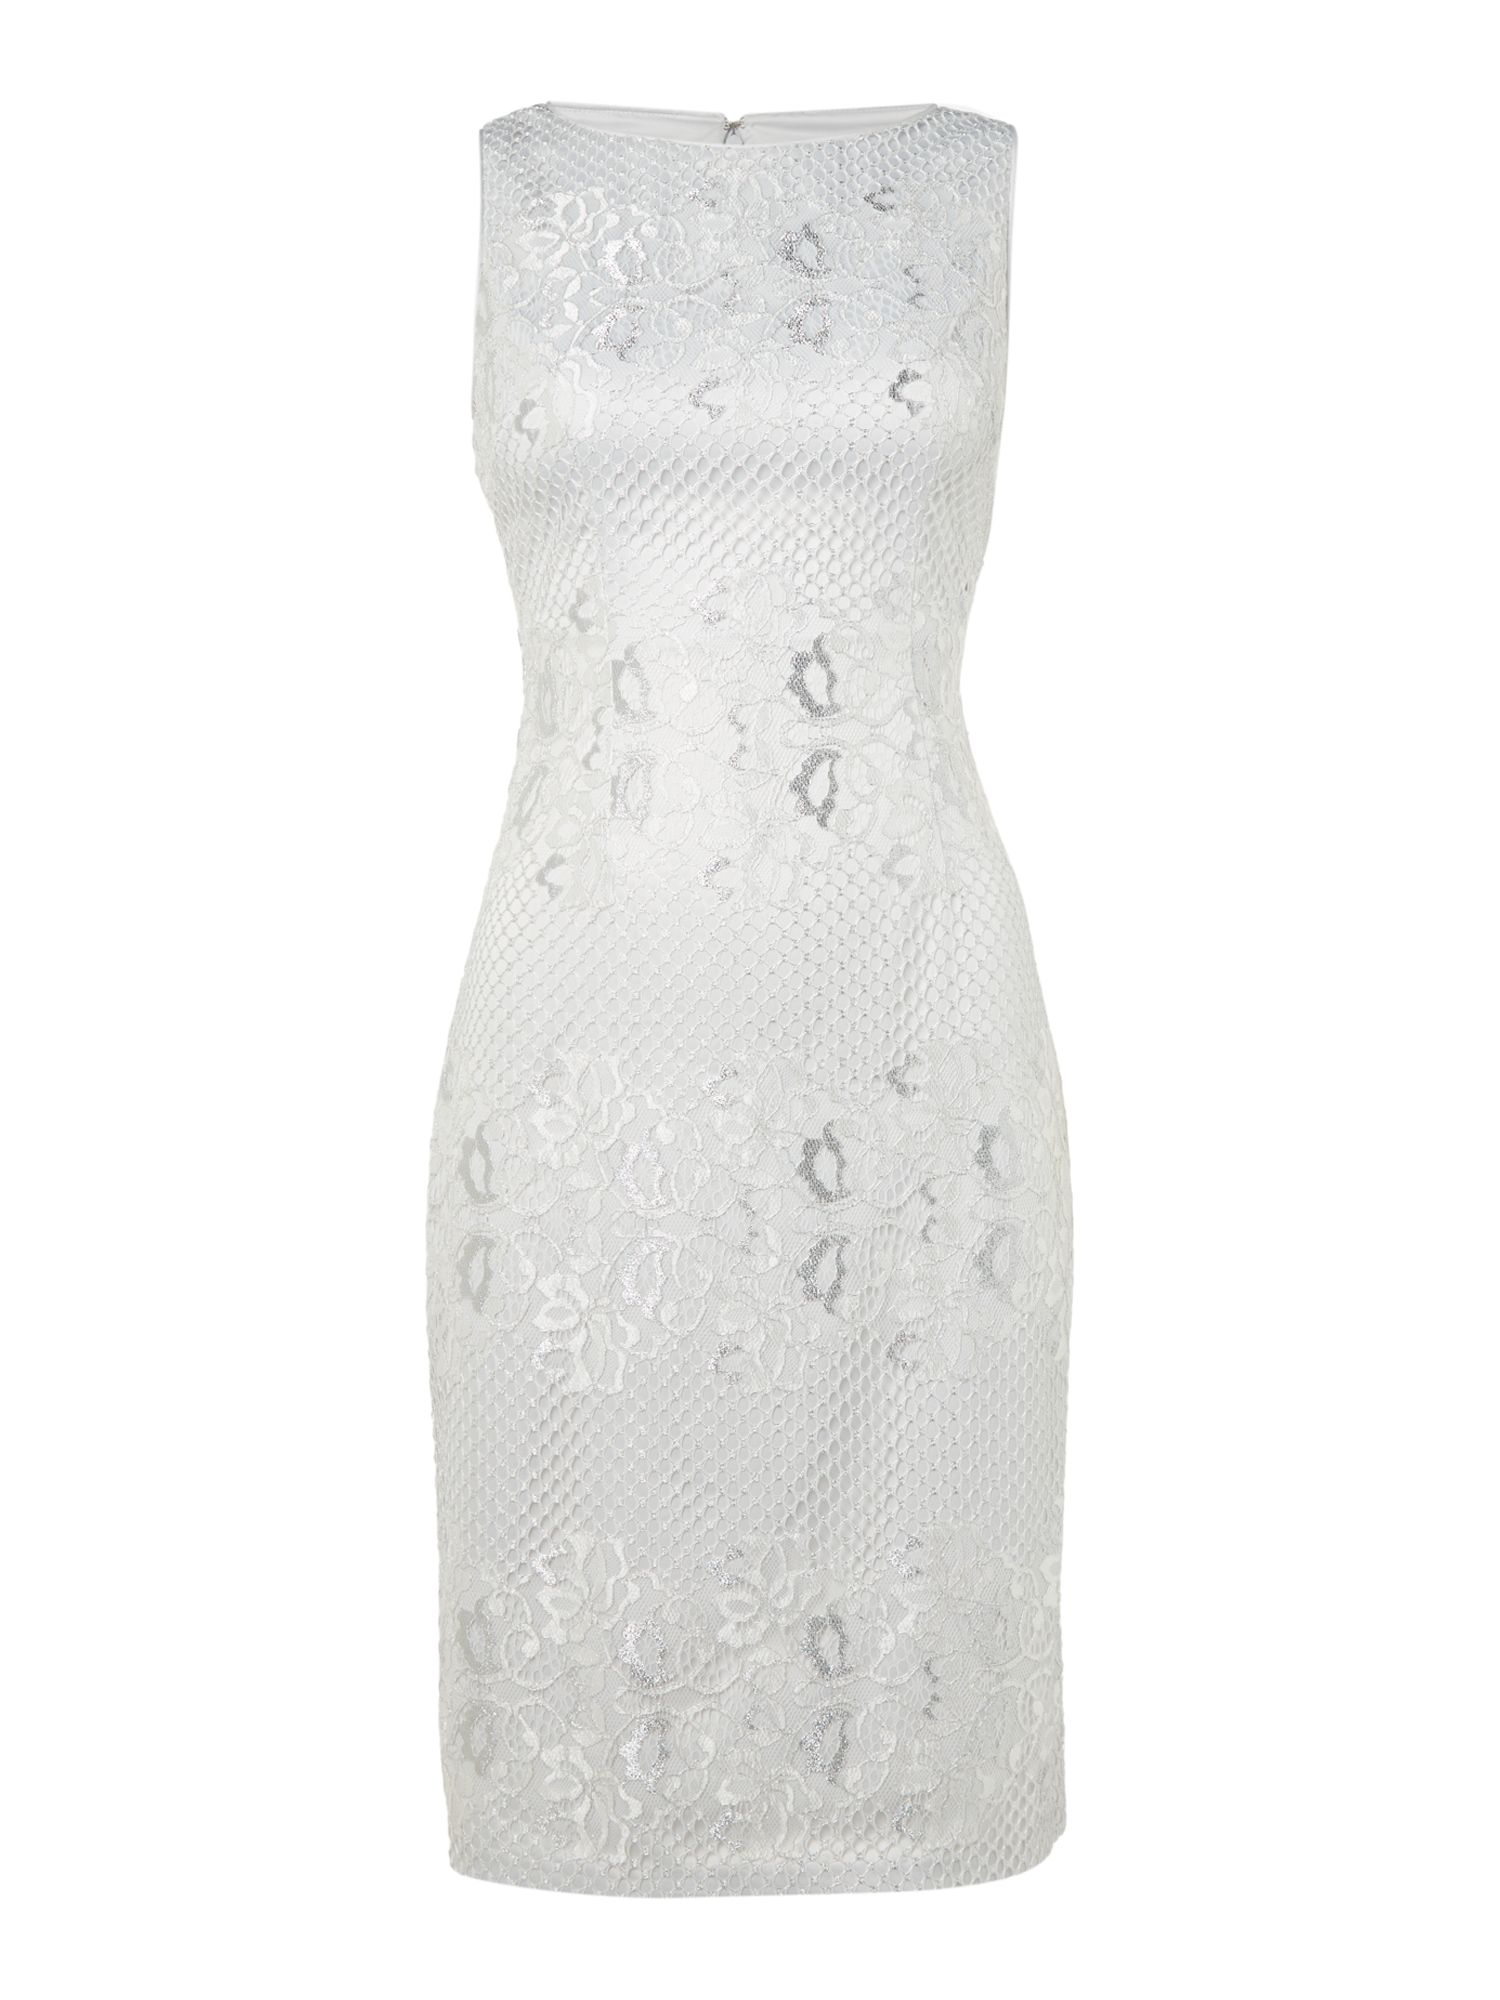 Eliza J Sleevless lace shift dress, Silver